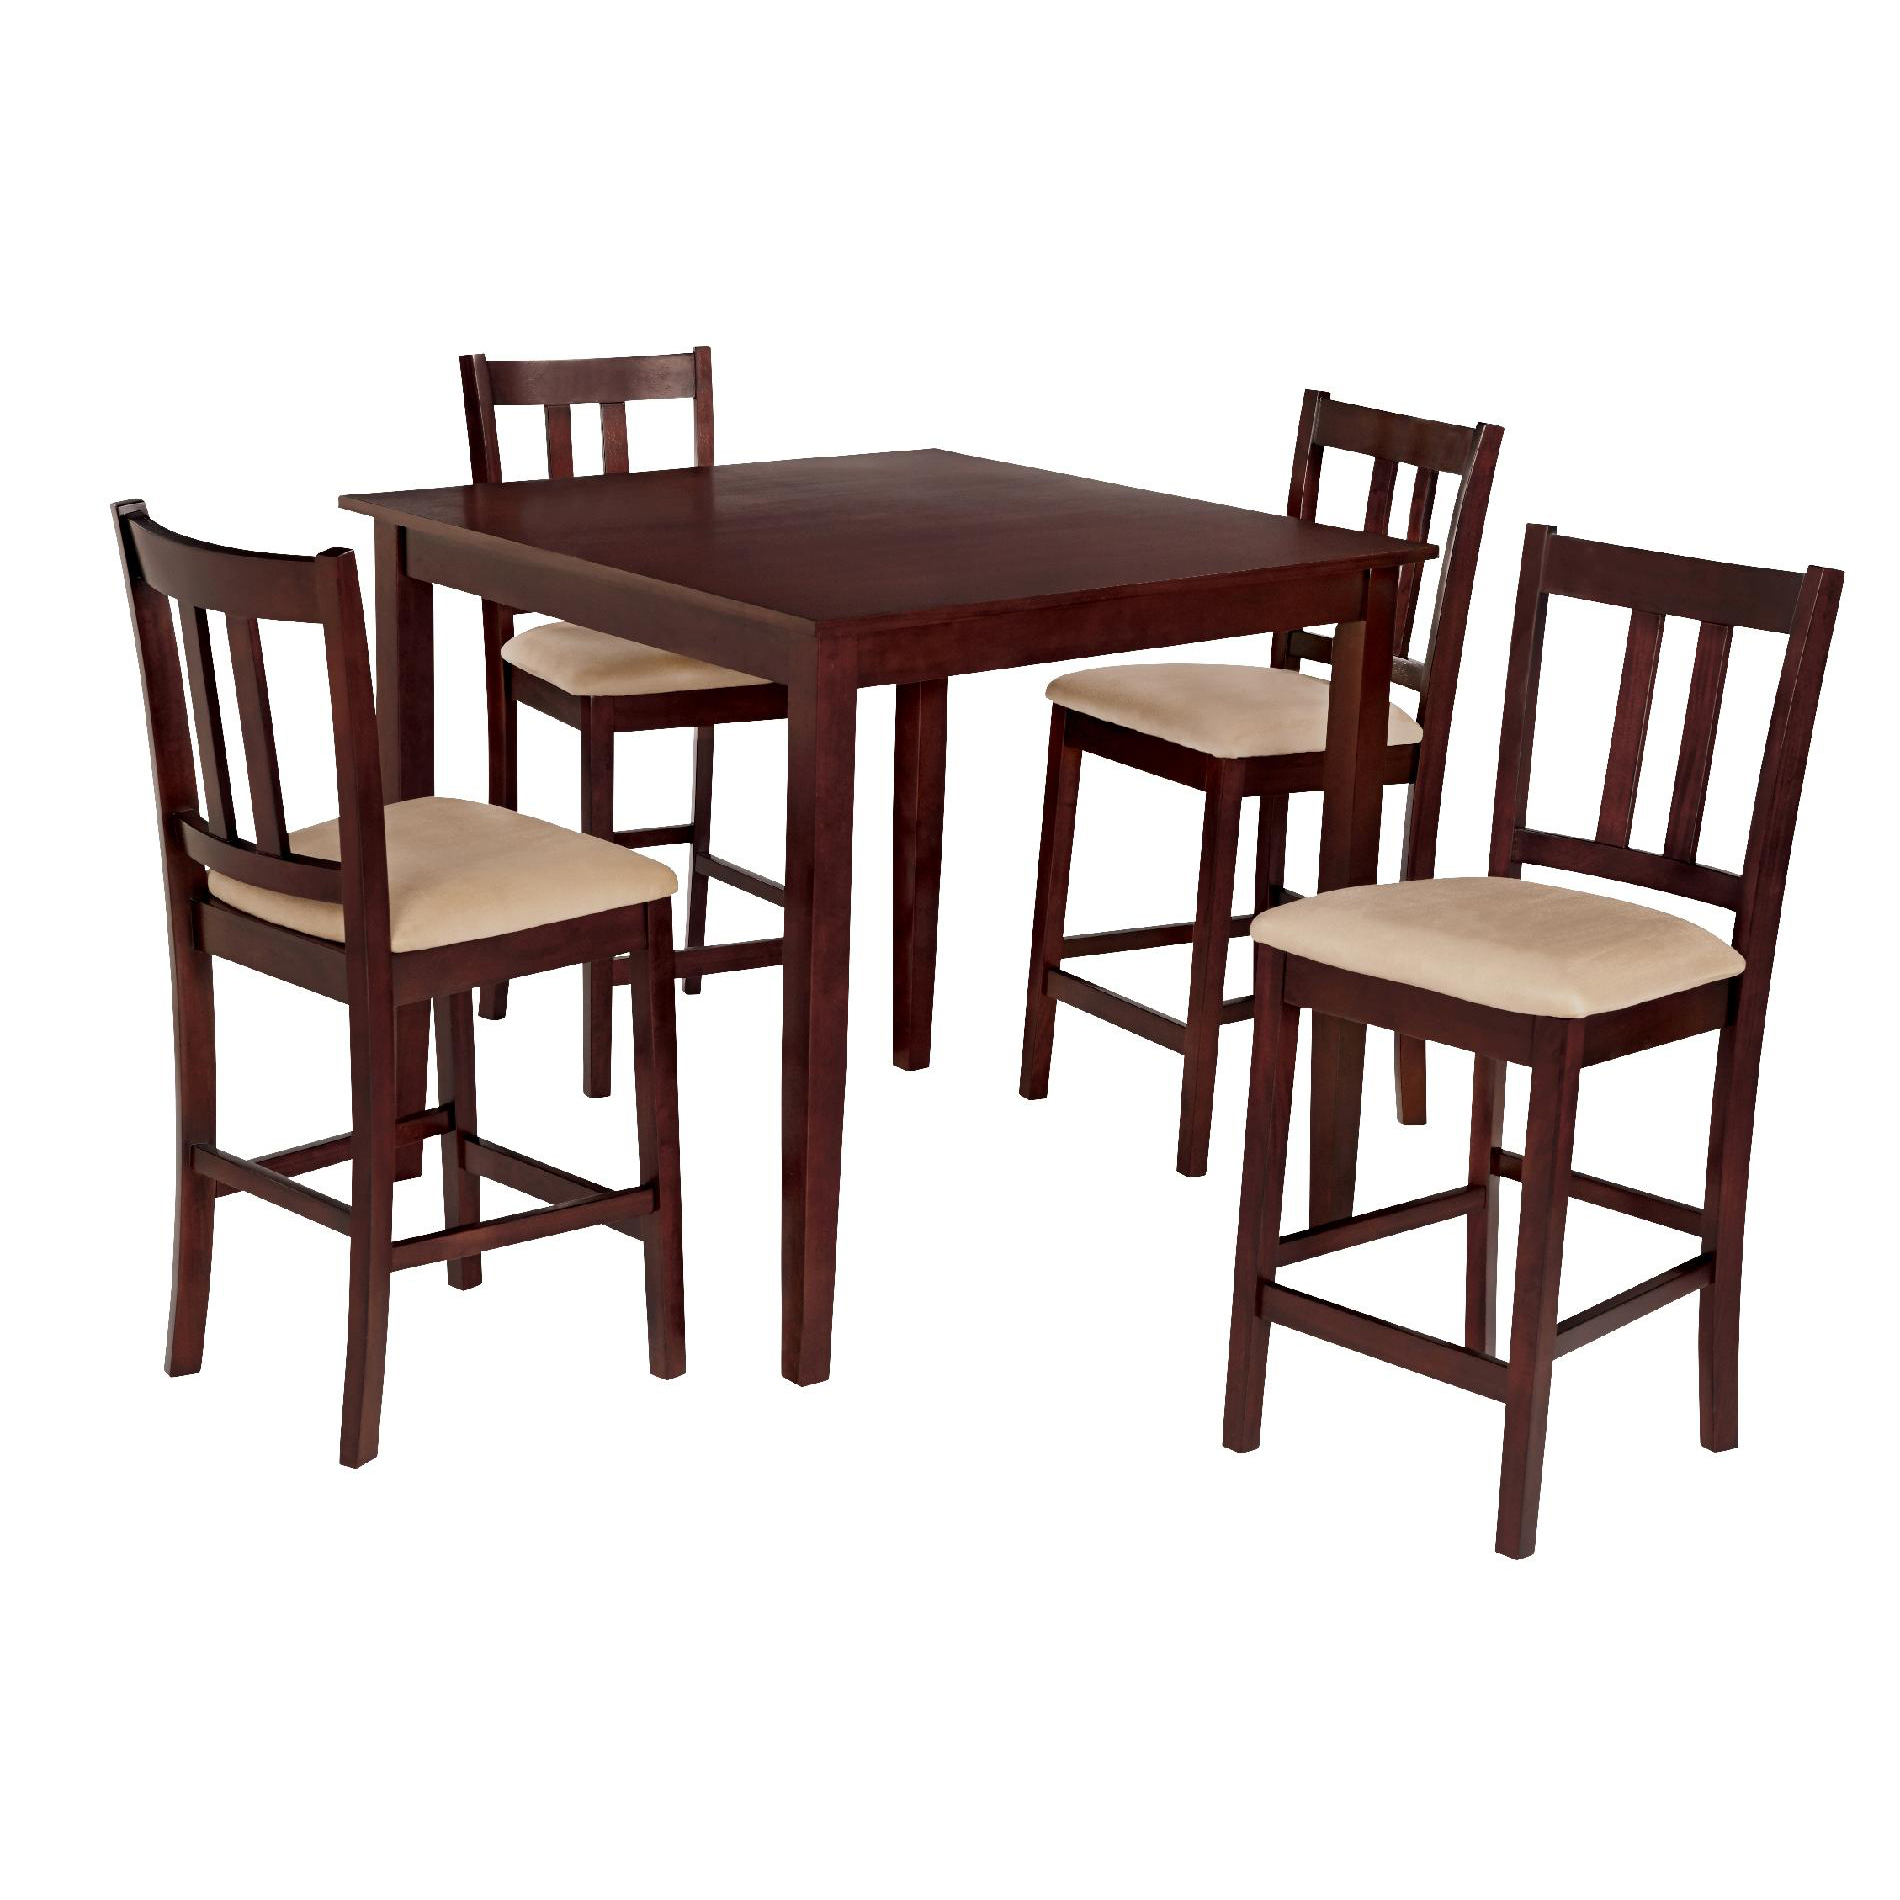 Kmart Dining Chairs Contemporary Dining Room Furniture Kmart